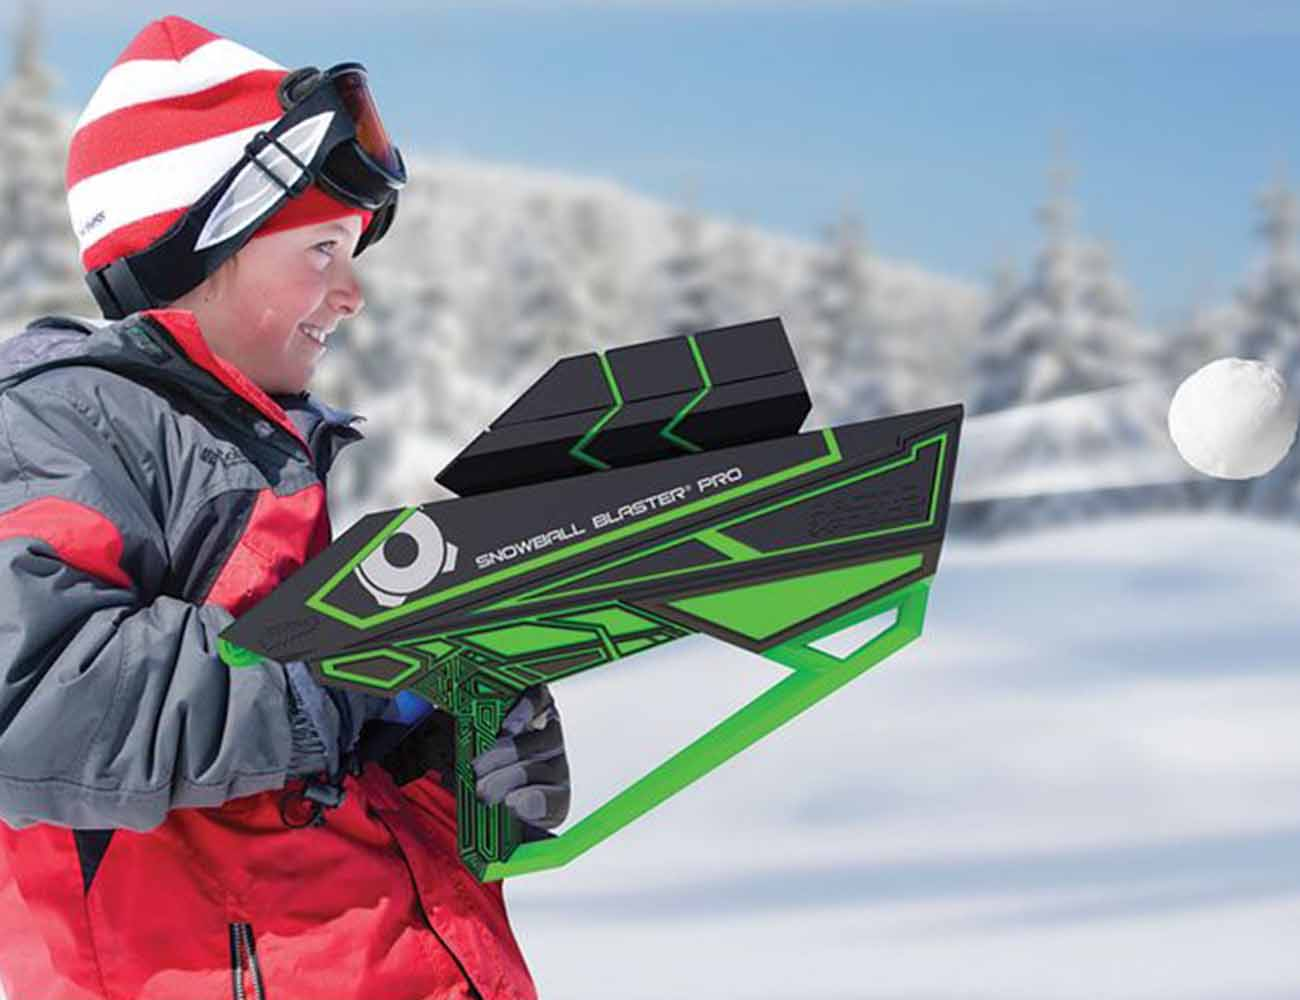 Snowball Blaster Pro – The Snowball Making Launcher